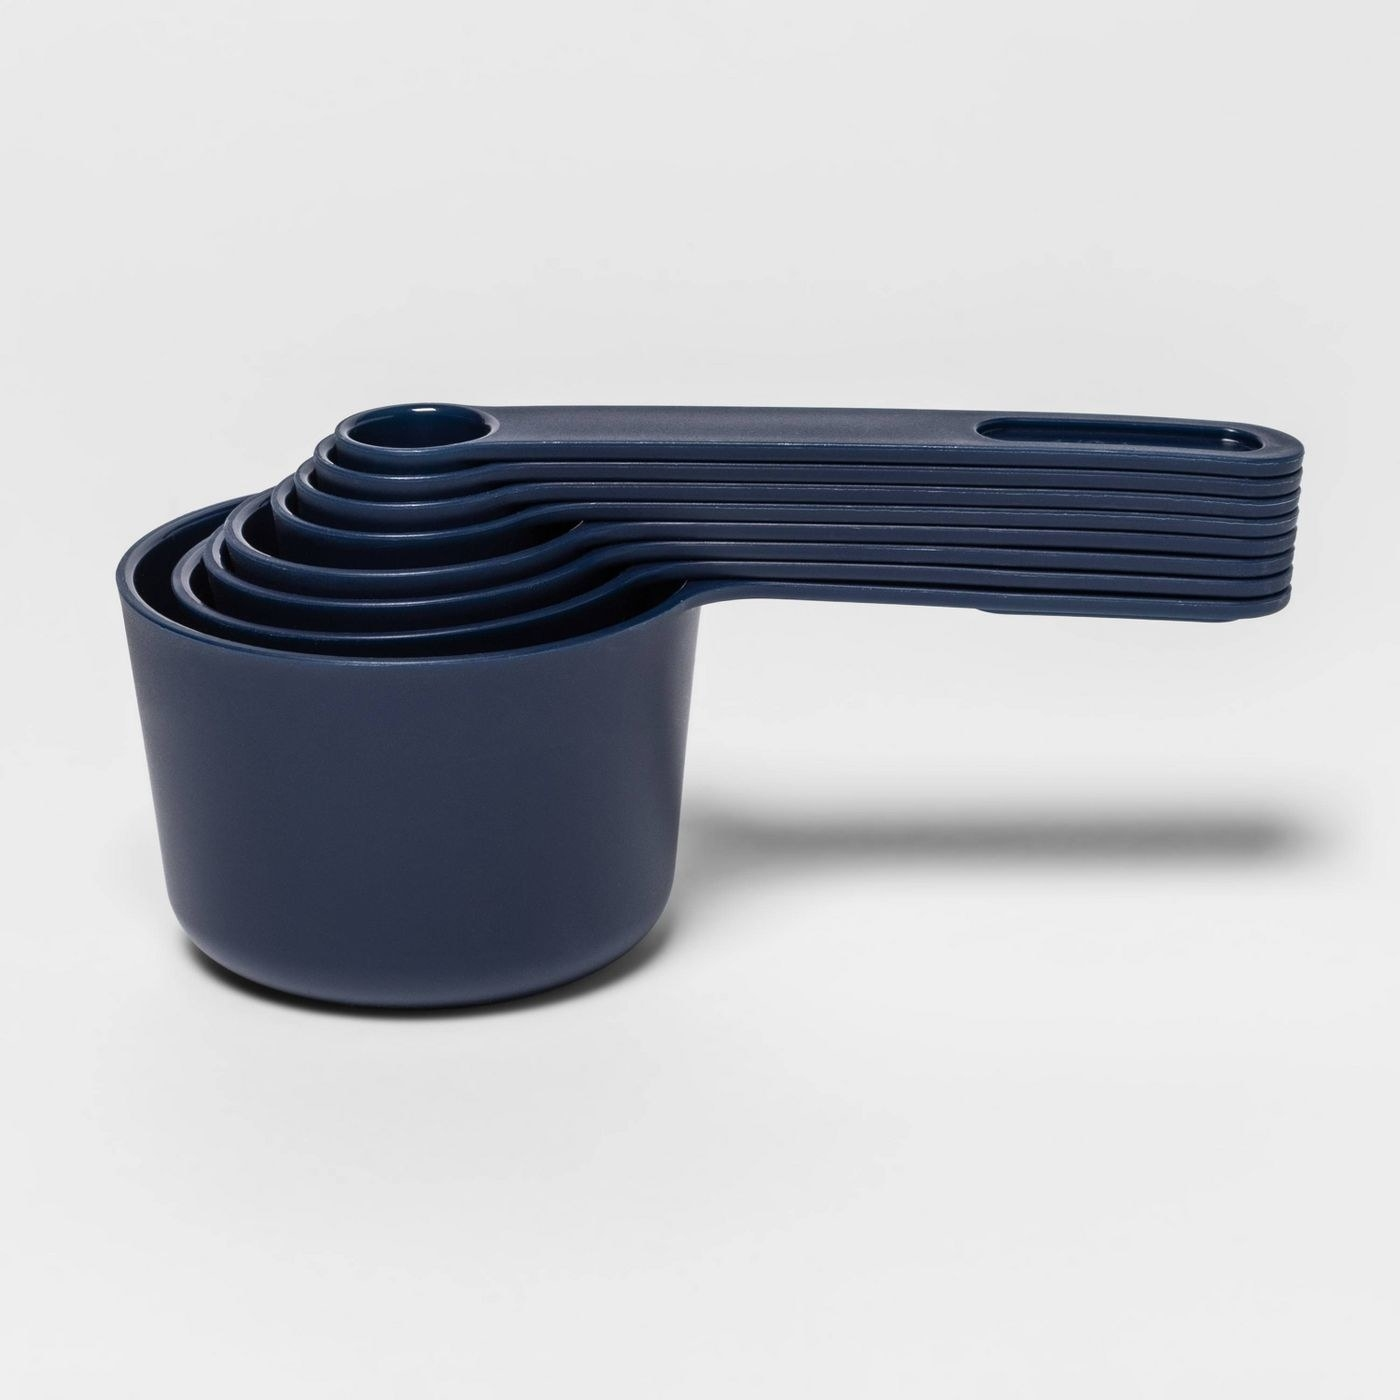 set of 8 dark blue measuring cups and spoons